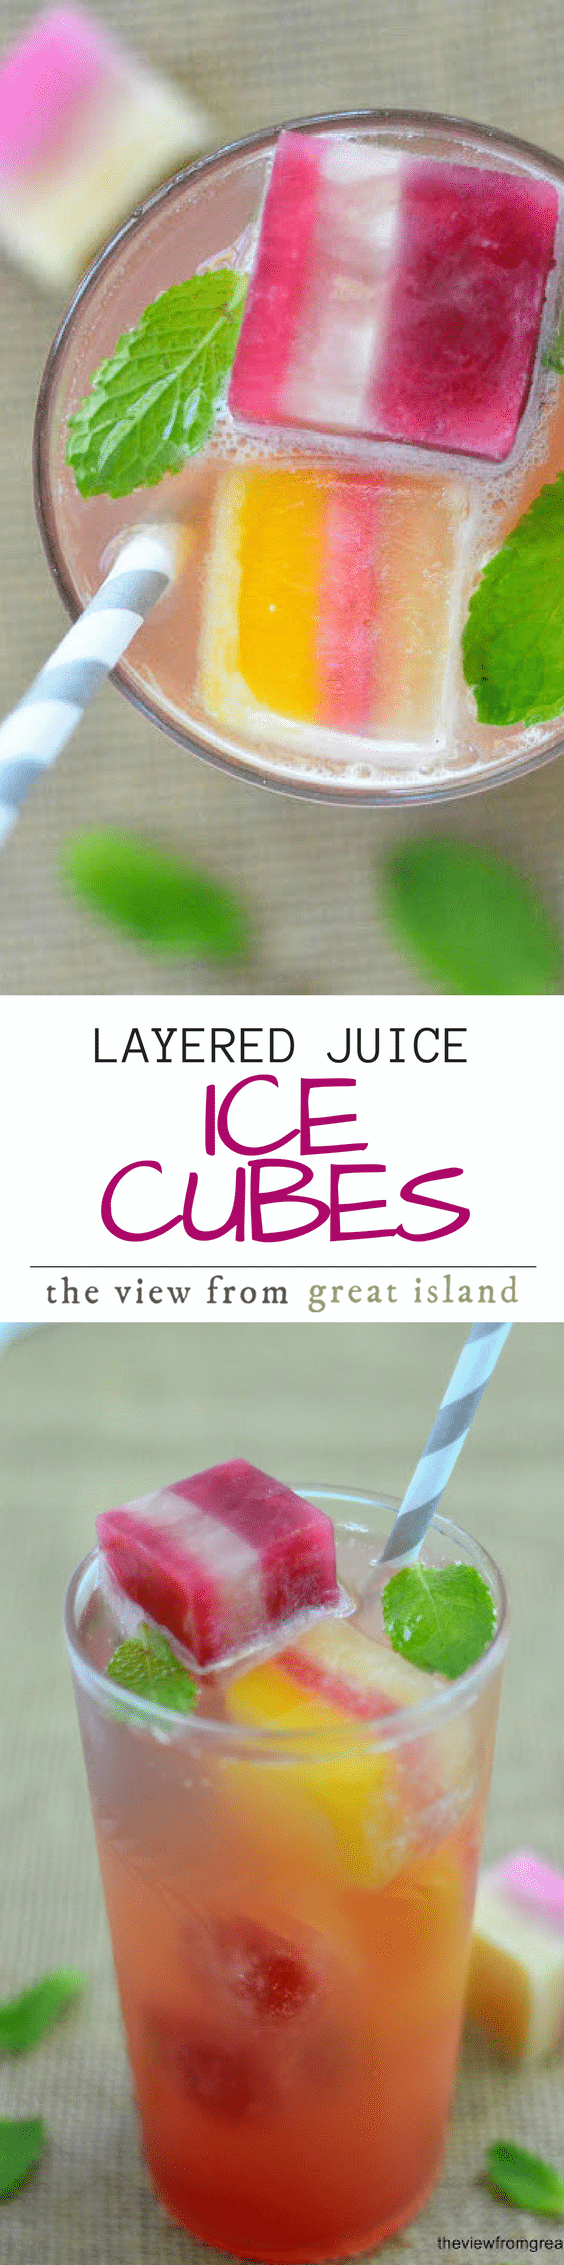 Layered ice cubes are made with pretty stripes of all natural fruit juice for a healthy alternative to sugary sodas. #beverage #juice #kids #drink #stripes #icecubes #healthy #soda #sugarfree #healthysoda #fruitjuice #summer